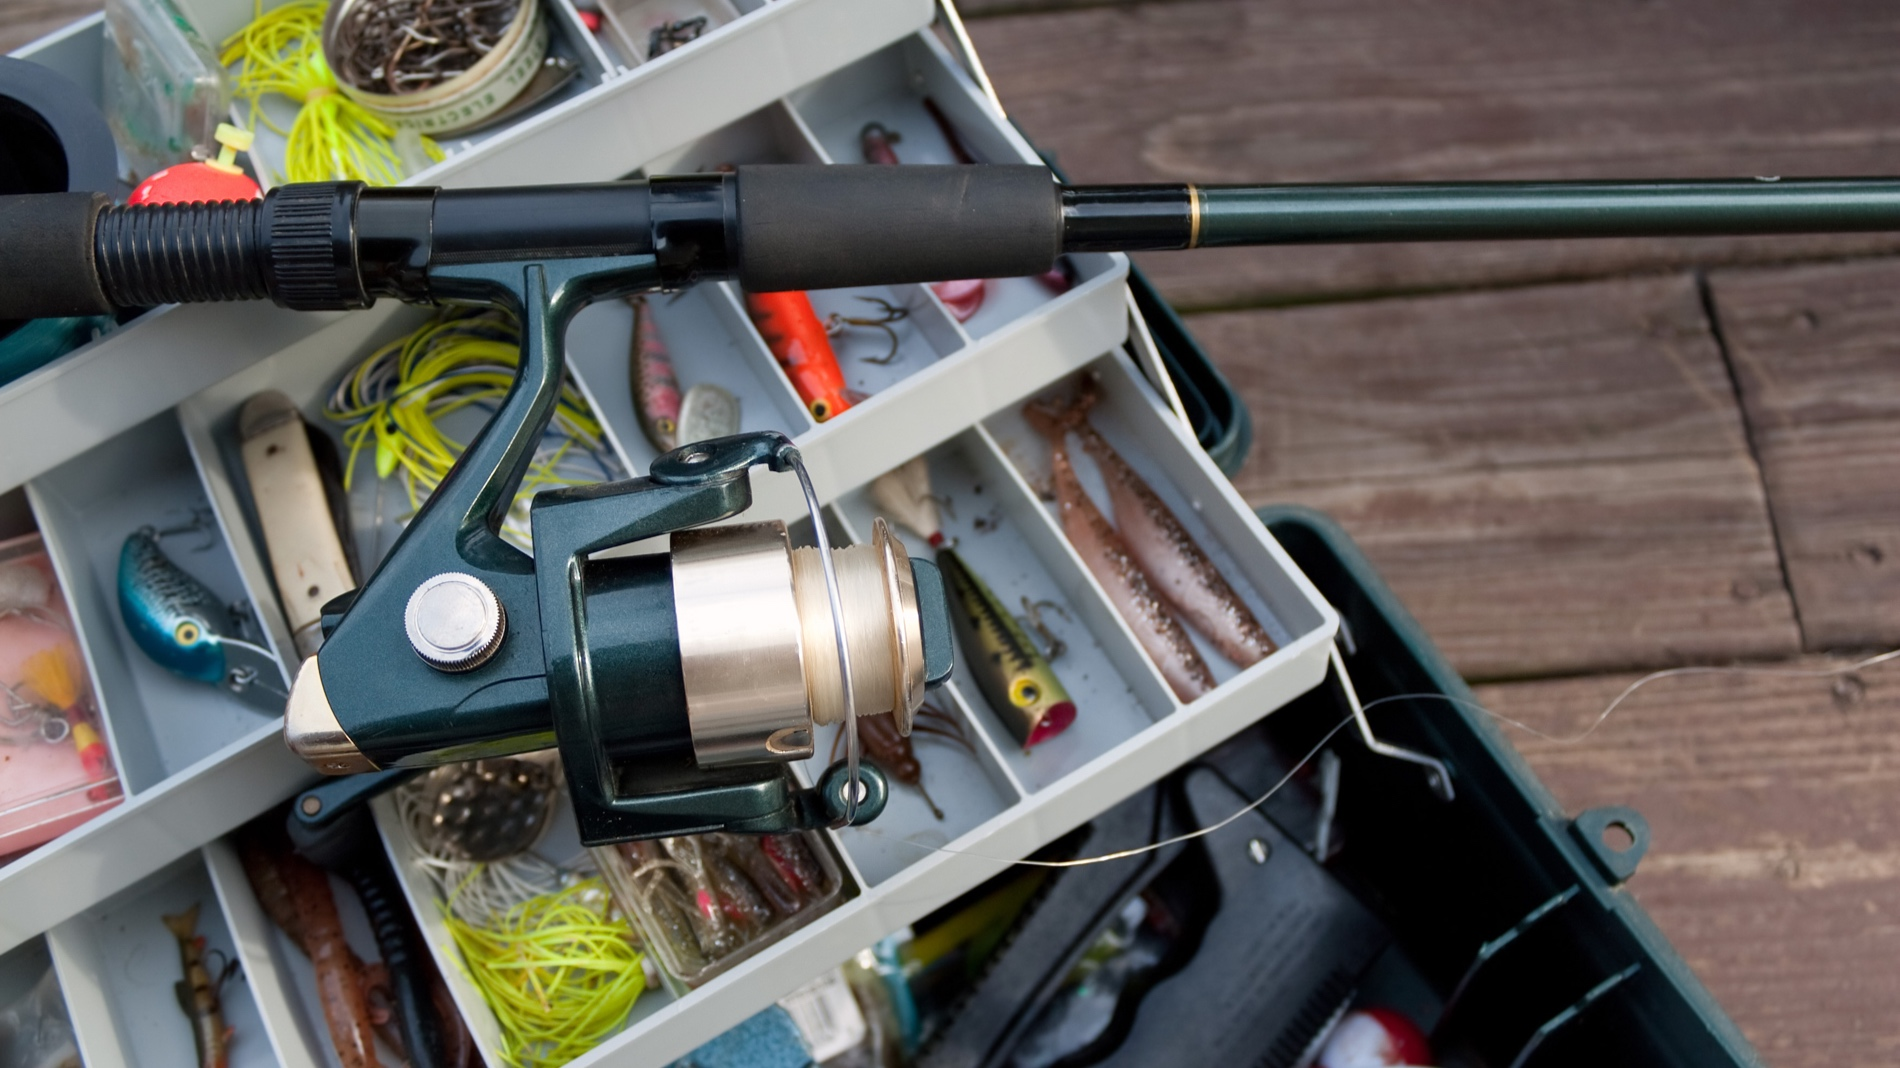 a-fishermans-rod-reel-and-tackle-box-filled-with-lures-and-bait-ready-for-the-start-of-fishing-season_SF85avCHi.jpg